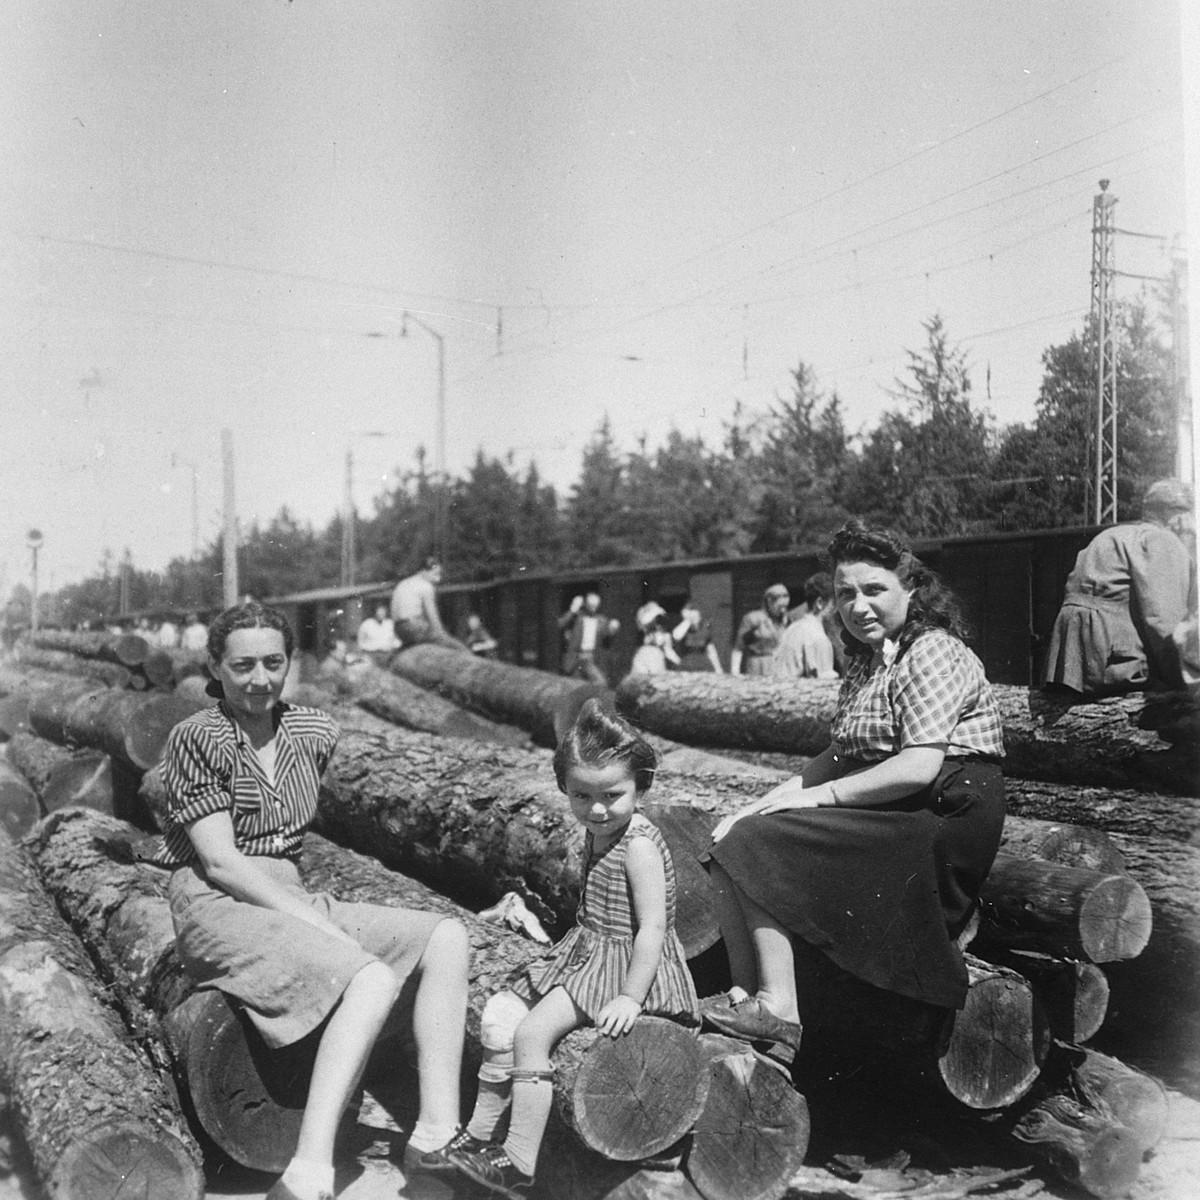 Two women and a young child sit on logs of wood in a displaced persons' camp in Selb.  Mania Ament is on the left.  Her daughter Jeanine is in the middle.